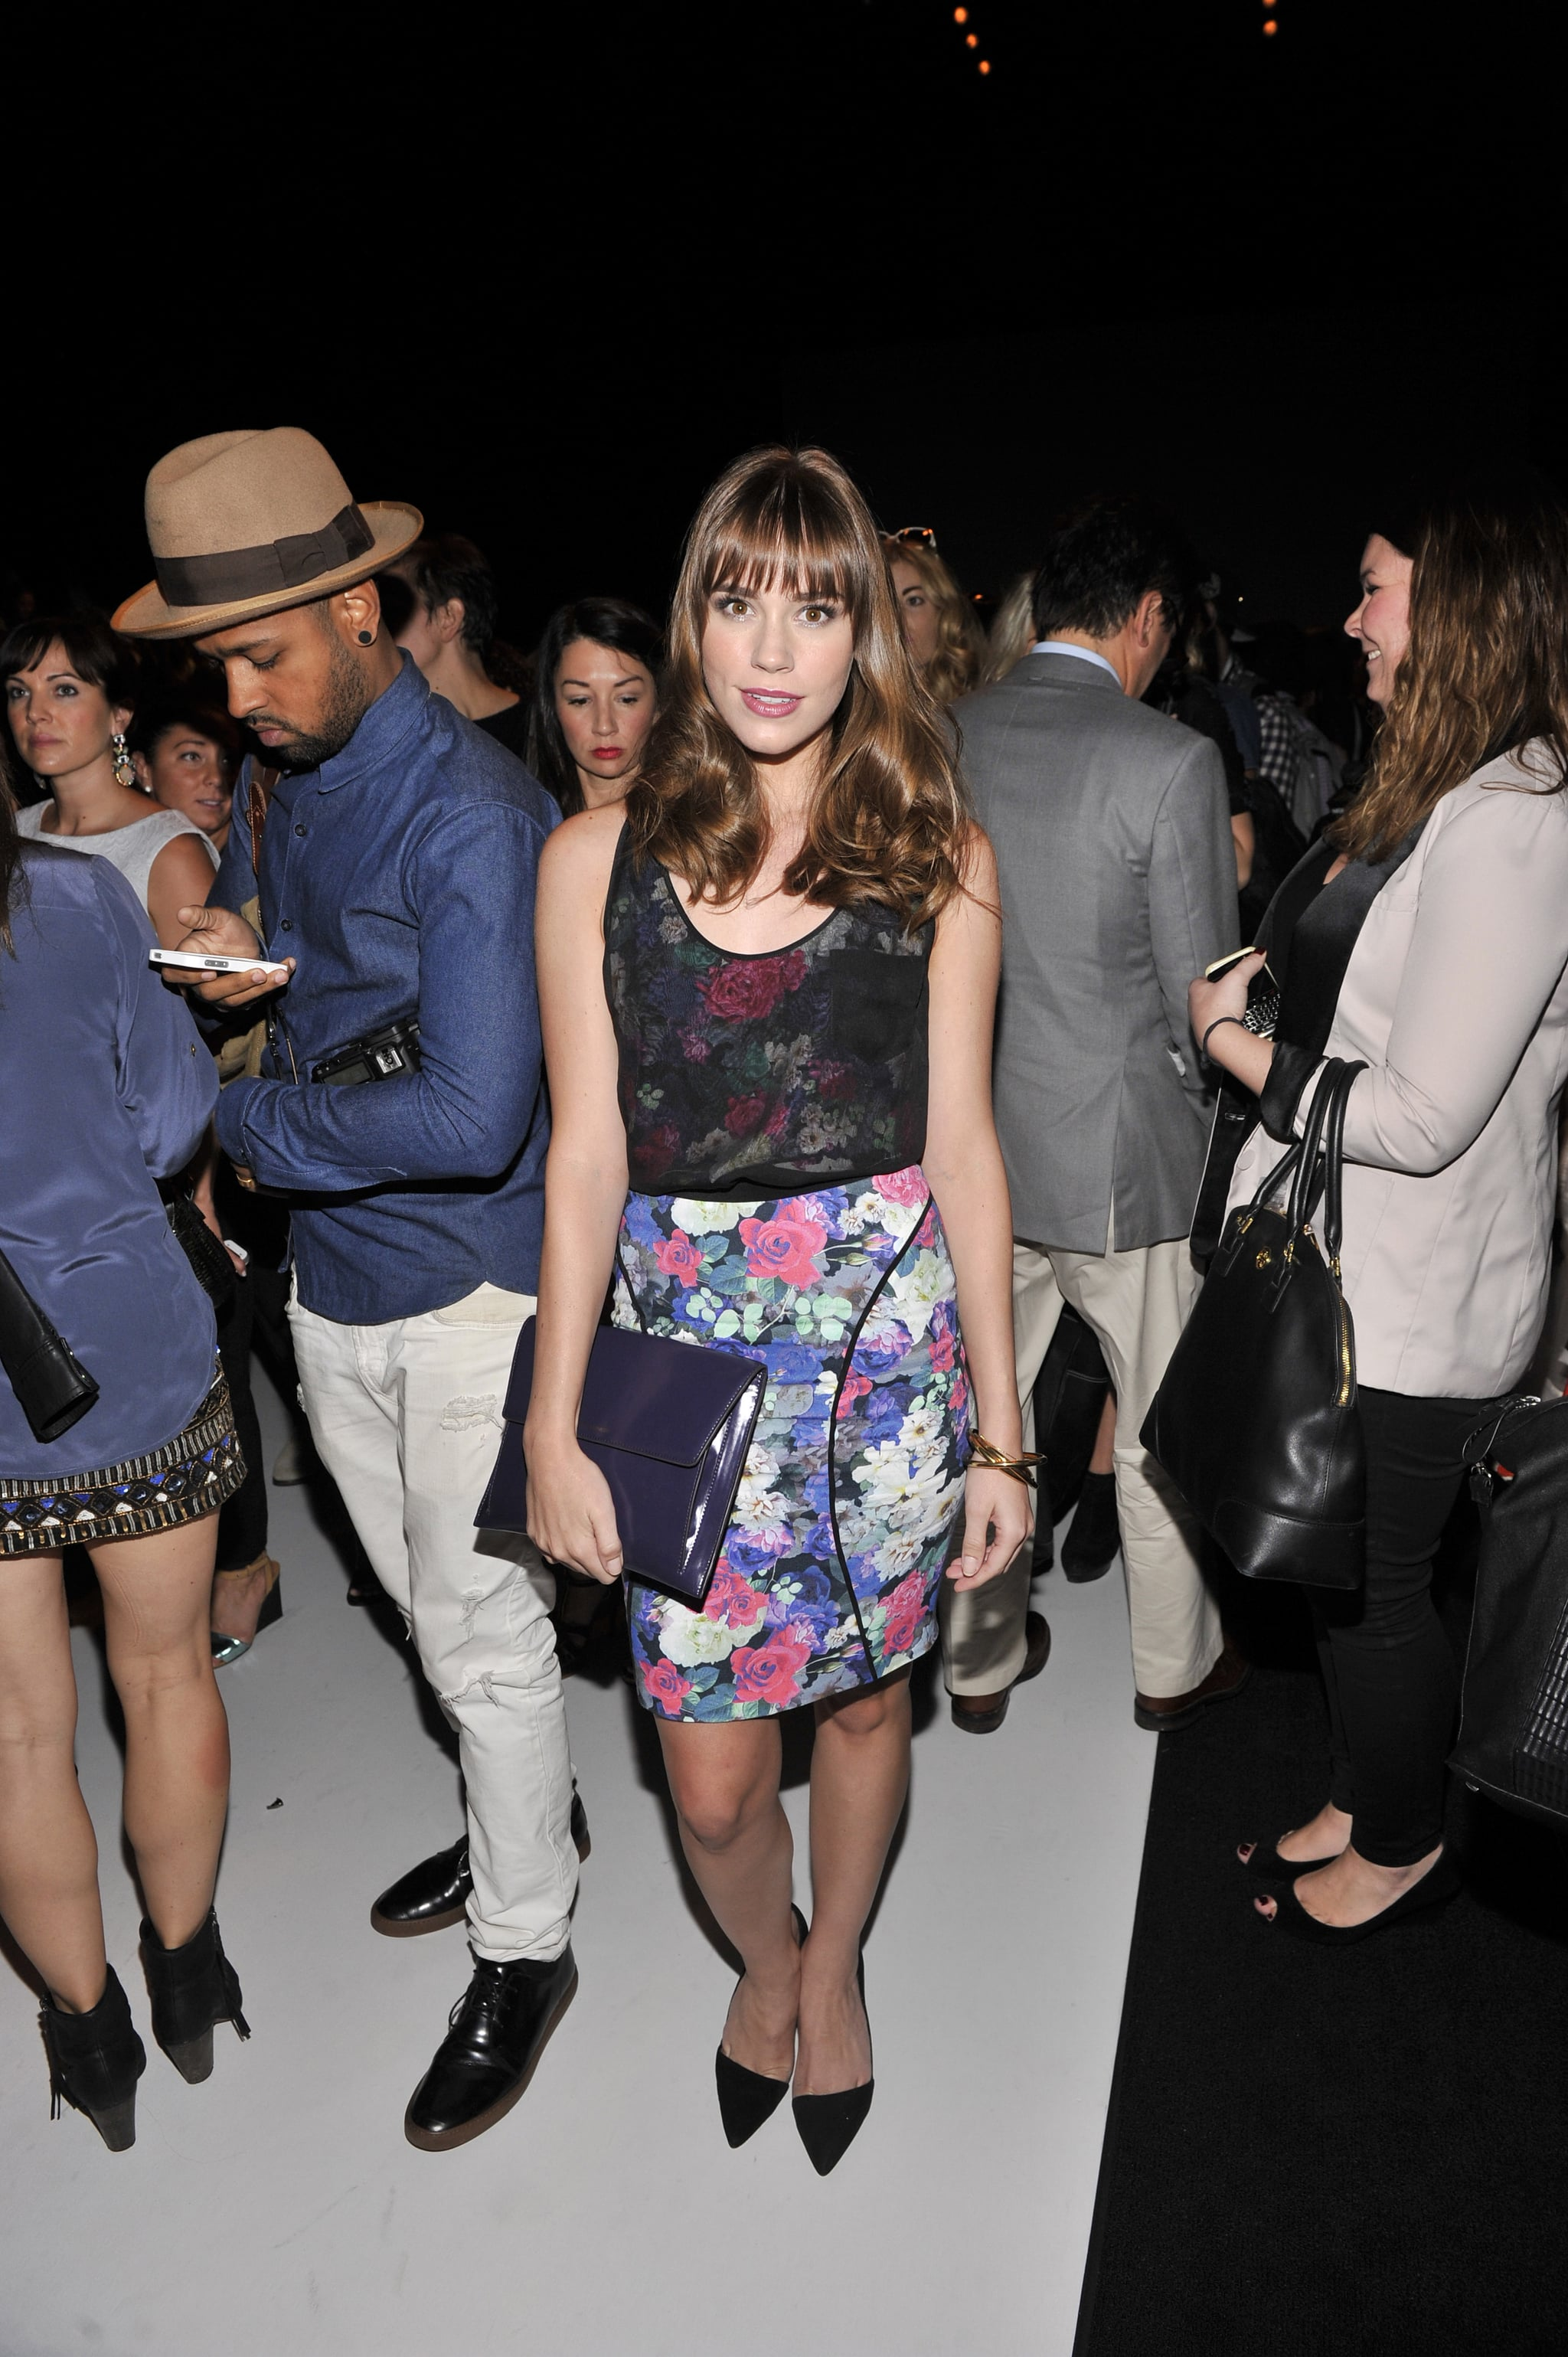 Christa B. Allen's floral dress stood out at Rebecca Minkoff, while a sheer black crop top added a bit of edge.